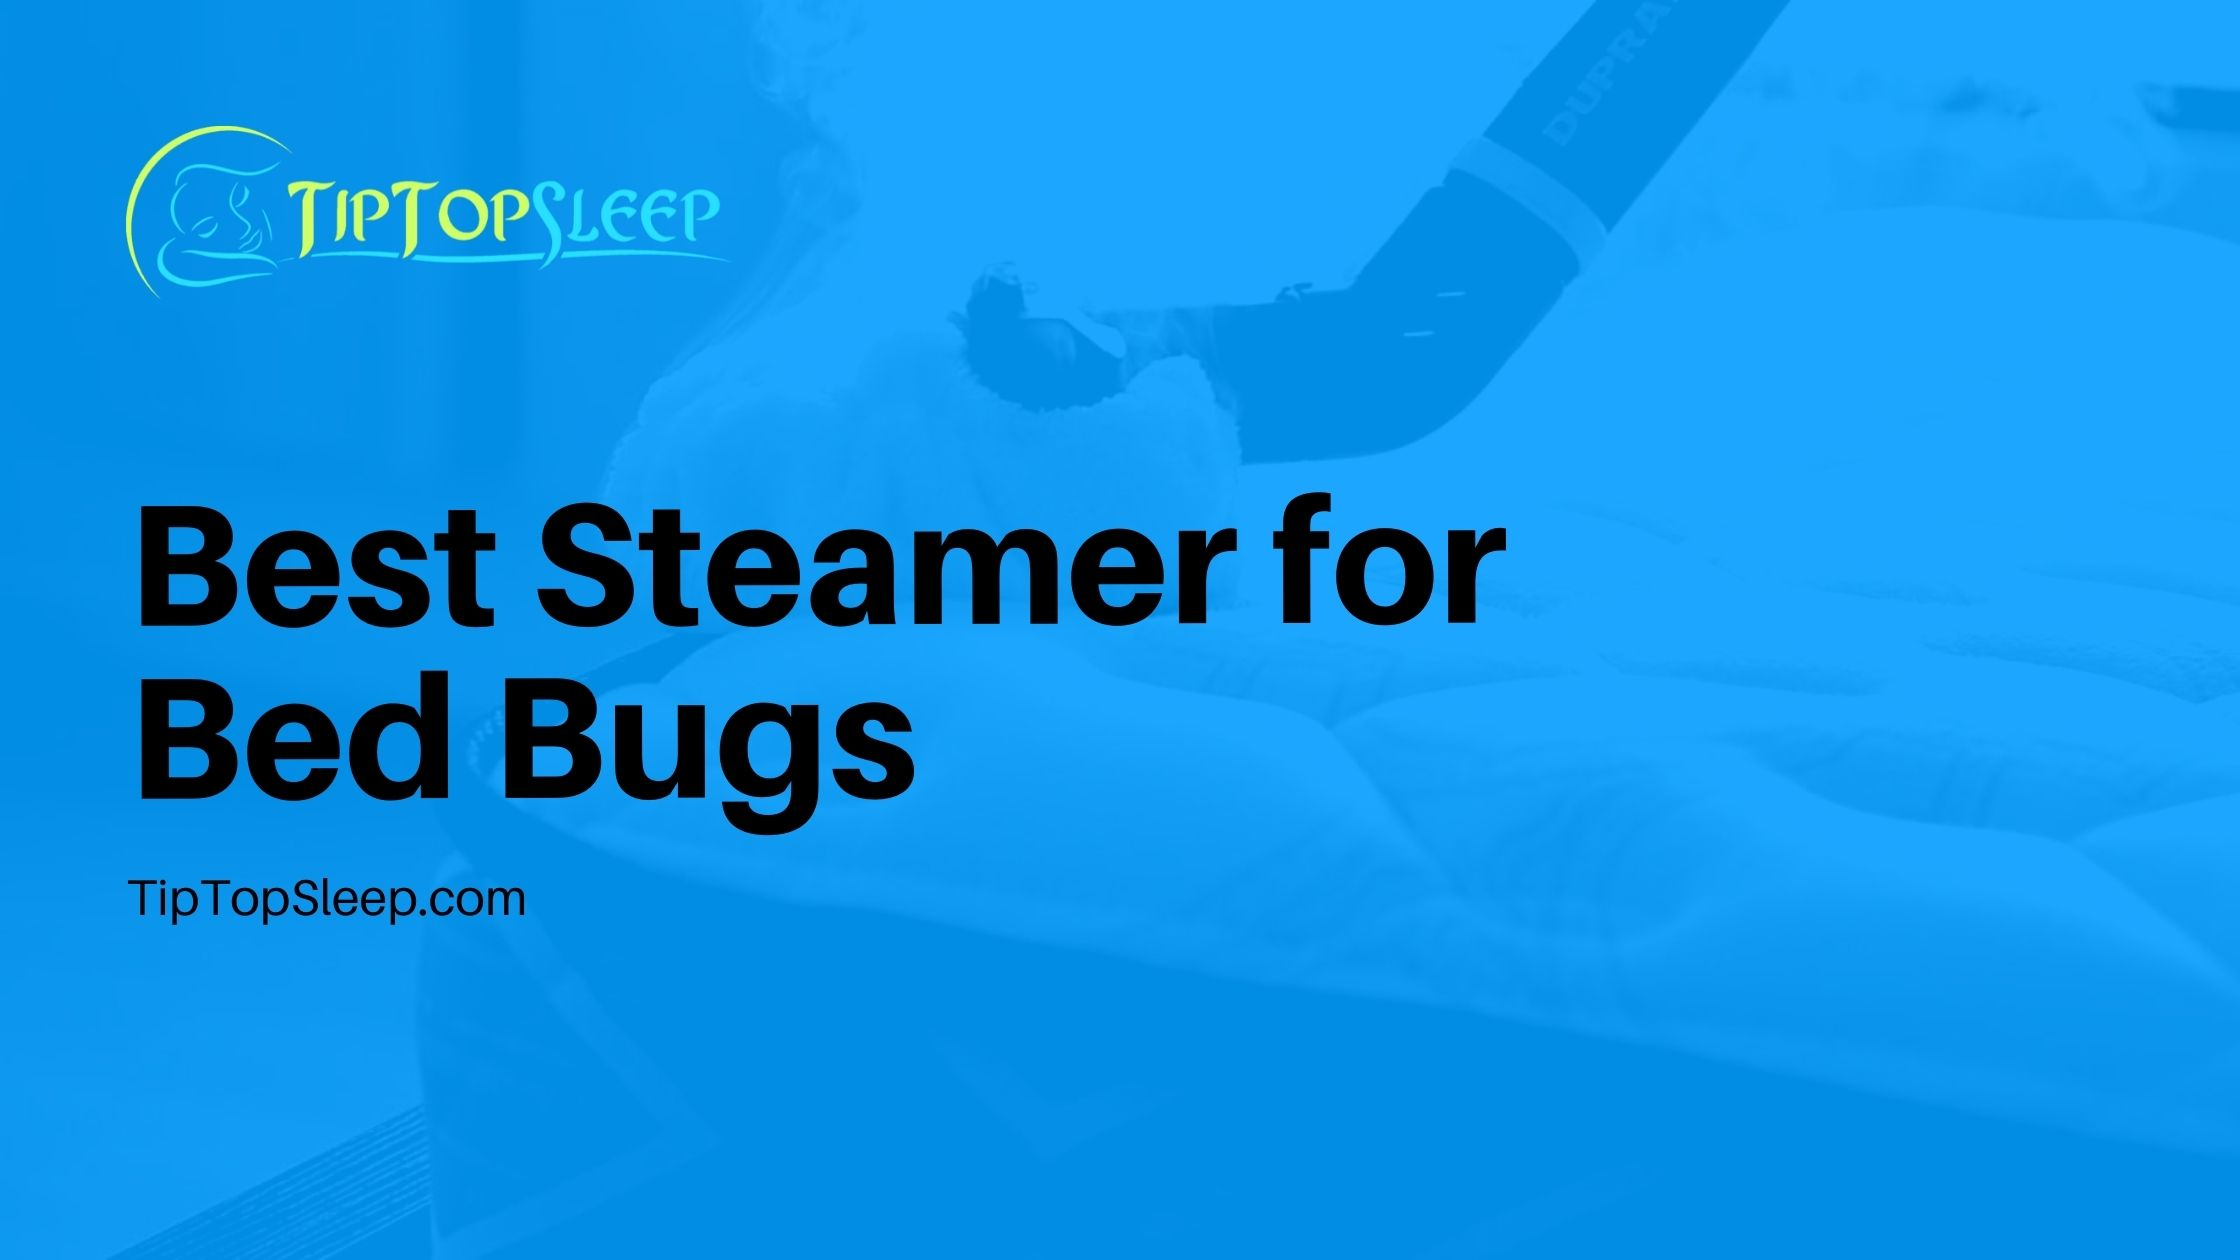 Best-Steamer-for-Bed-Bugs